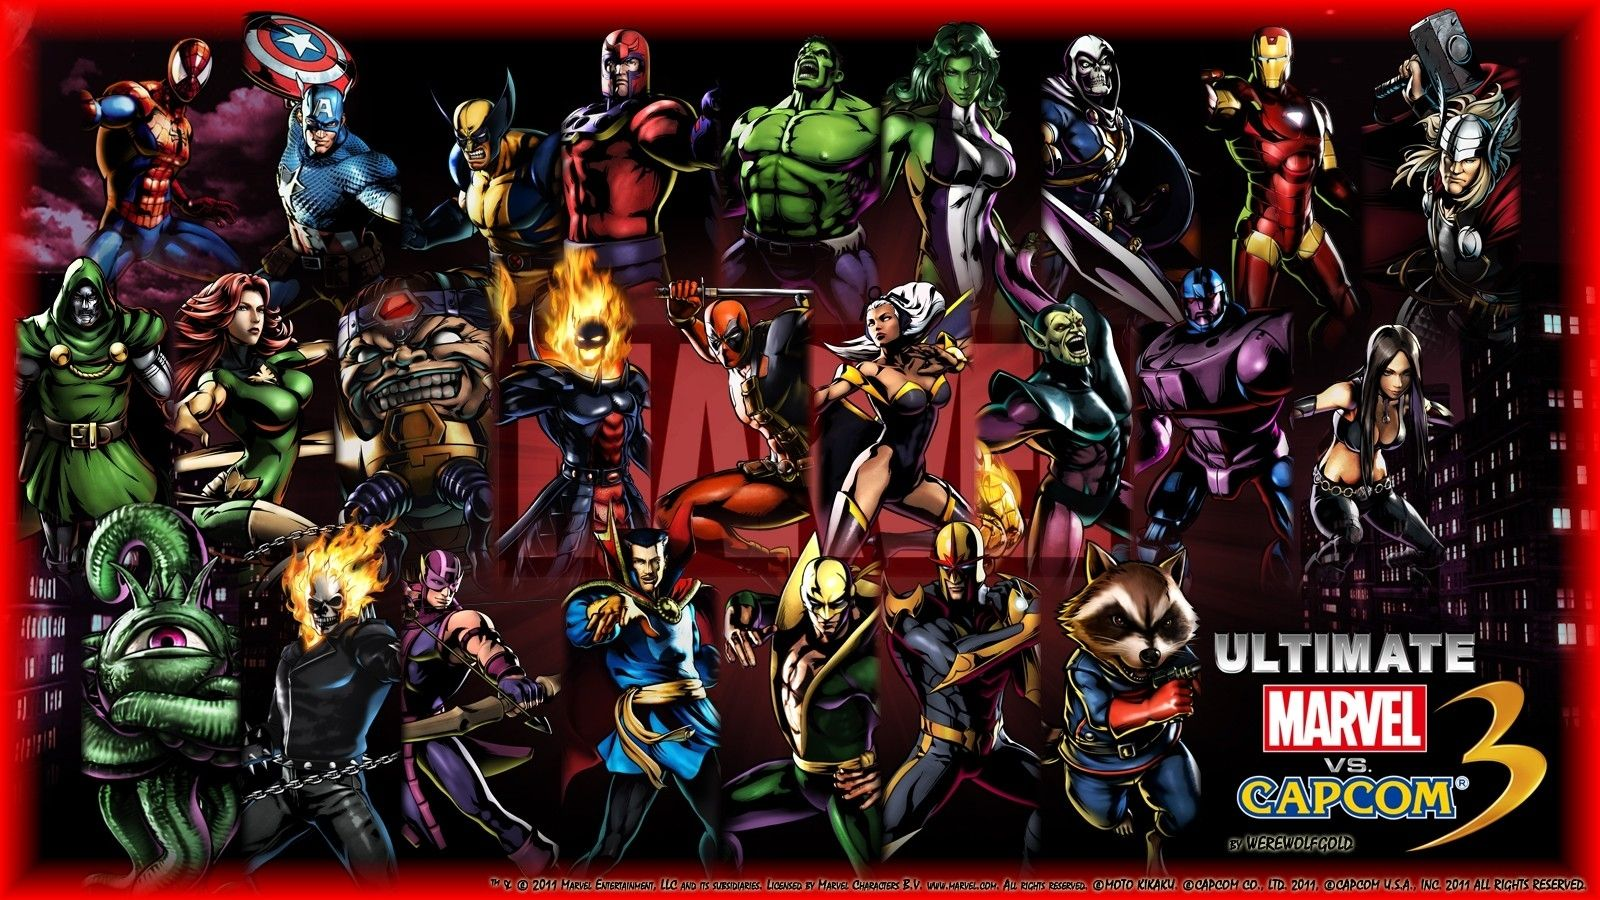 Top Wallpaper Marvel High Resolution - 6a050cde4bb0d983617ab9e5697f717b  Photograph_56729.jpg